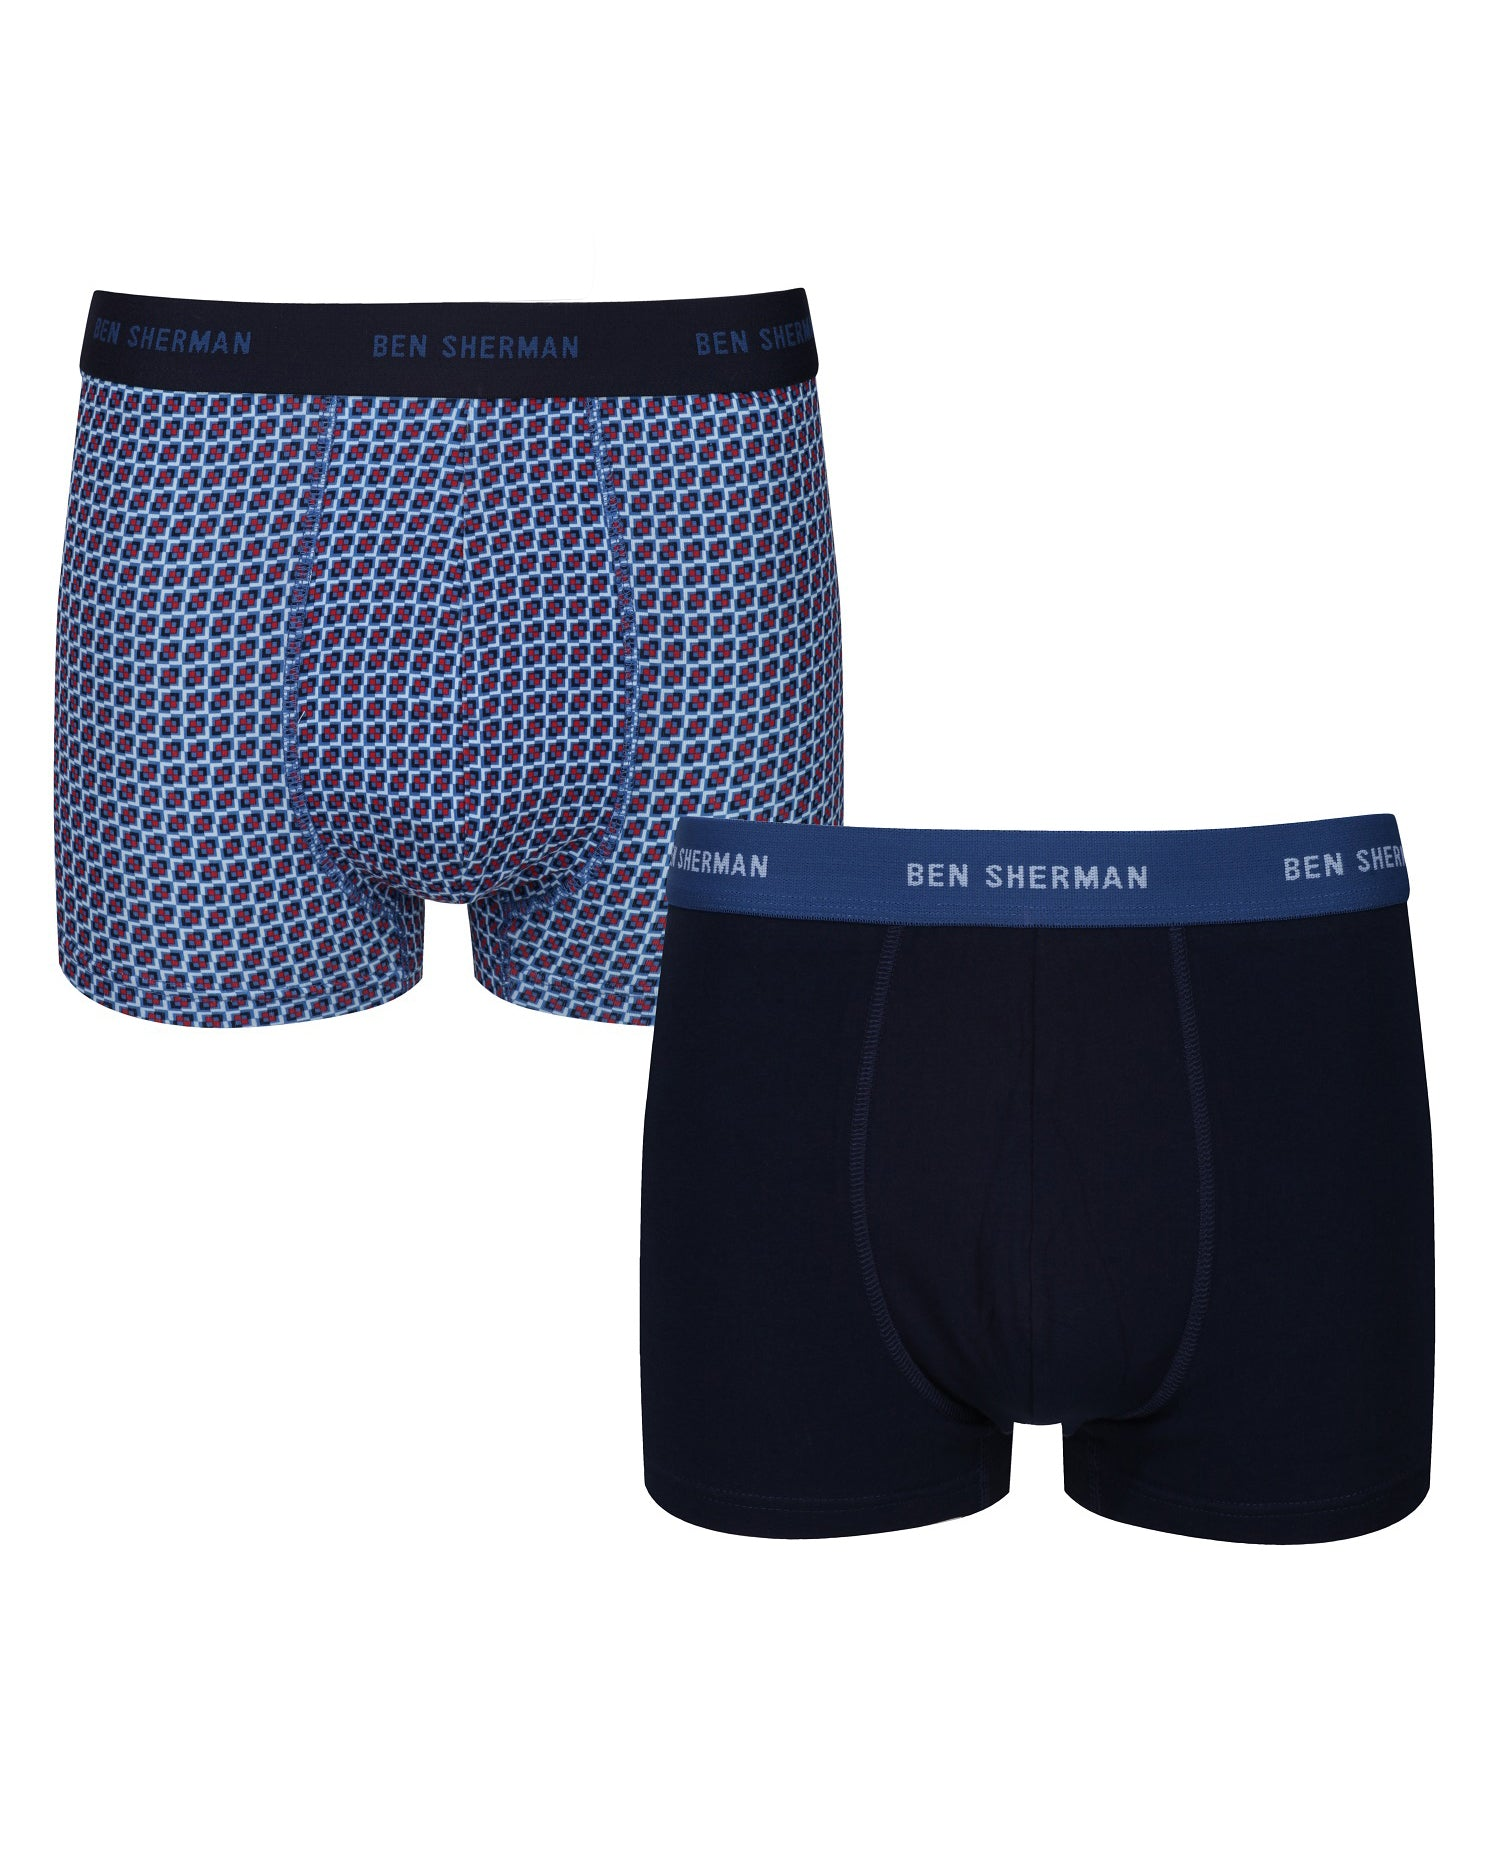 Laz Men's 2-Pack Fitted Boxer-Briefs - Skyway Print/Navy